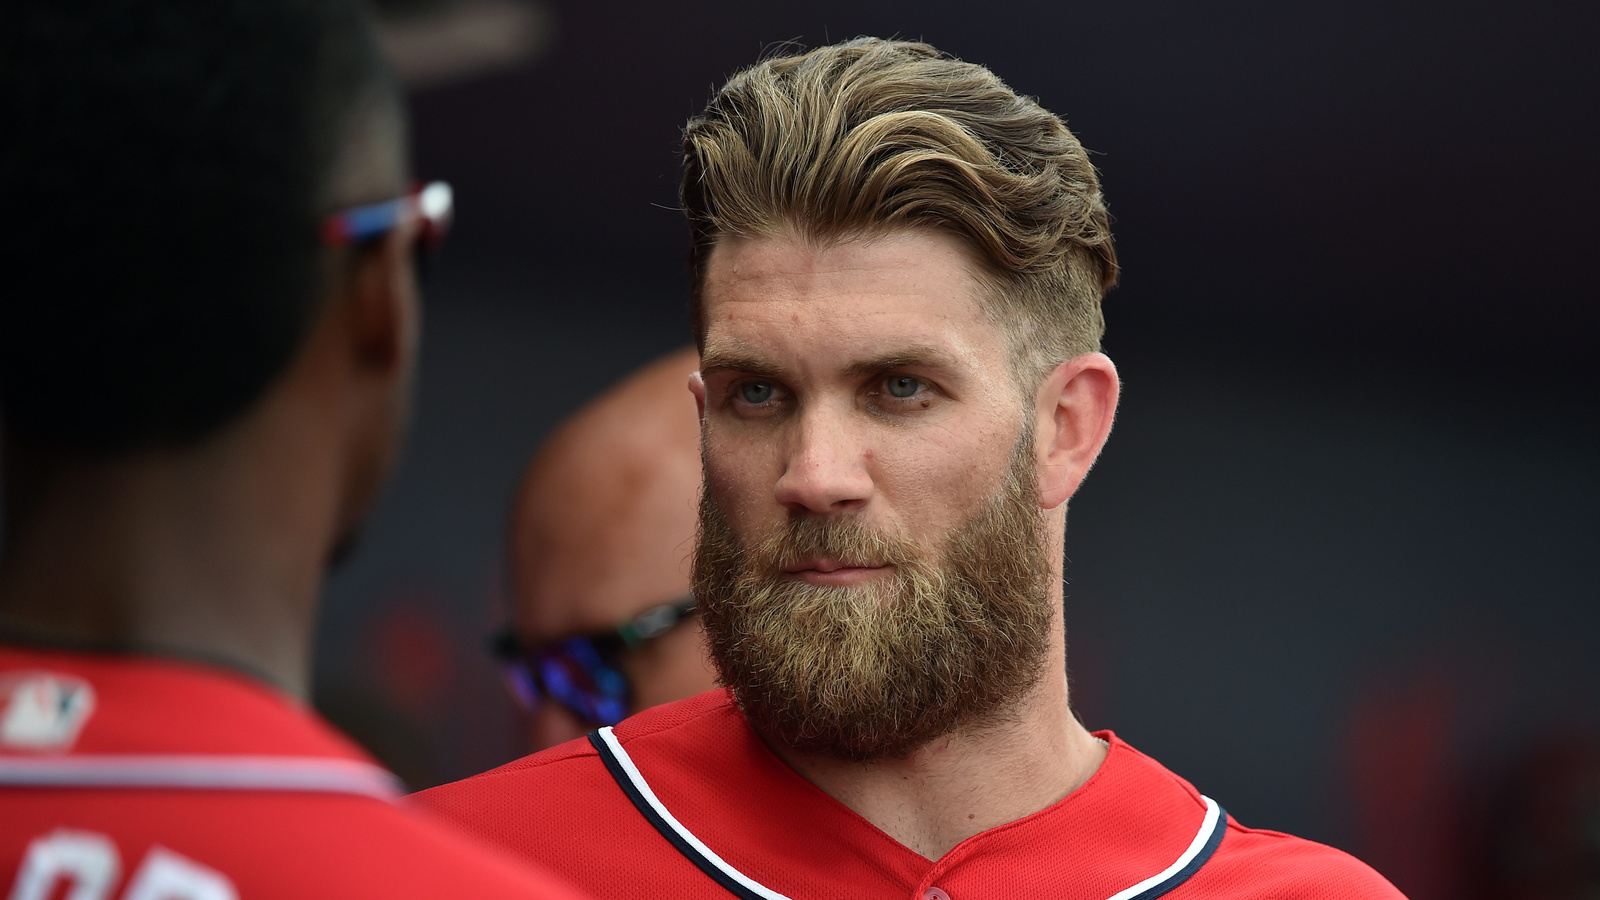 Watch Bryce Harper Busted Double Fisting Hair Dryers Yardbarker